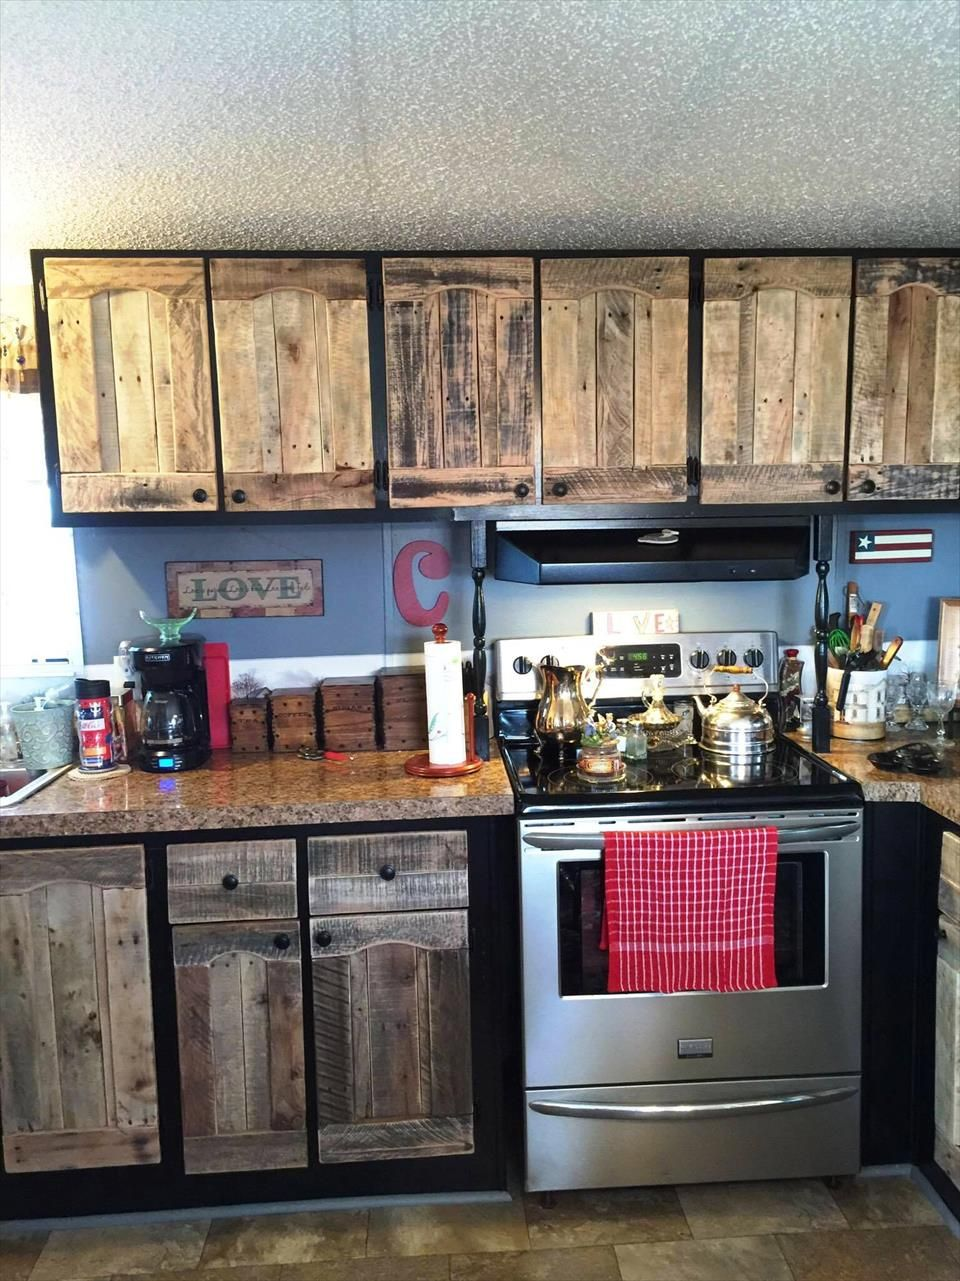 How To Build A Kitchen Island Using Wall Cabinets Pin By Leah's Rustic Decor On Pallet Craft Ideas | Wooden